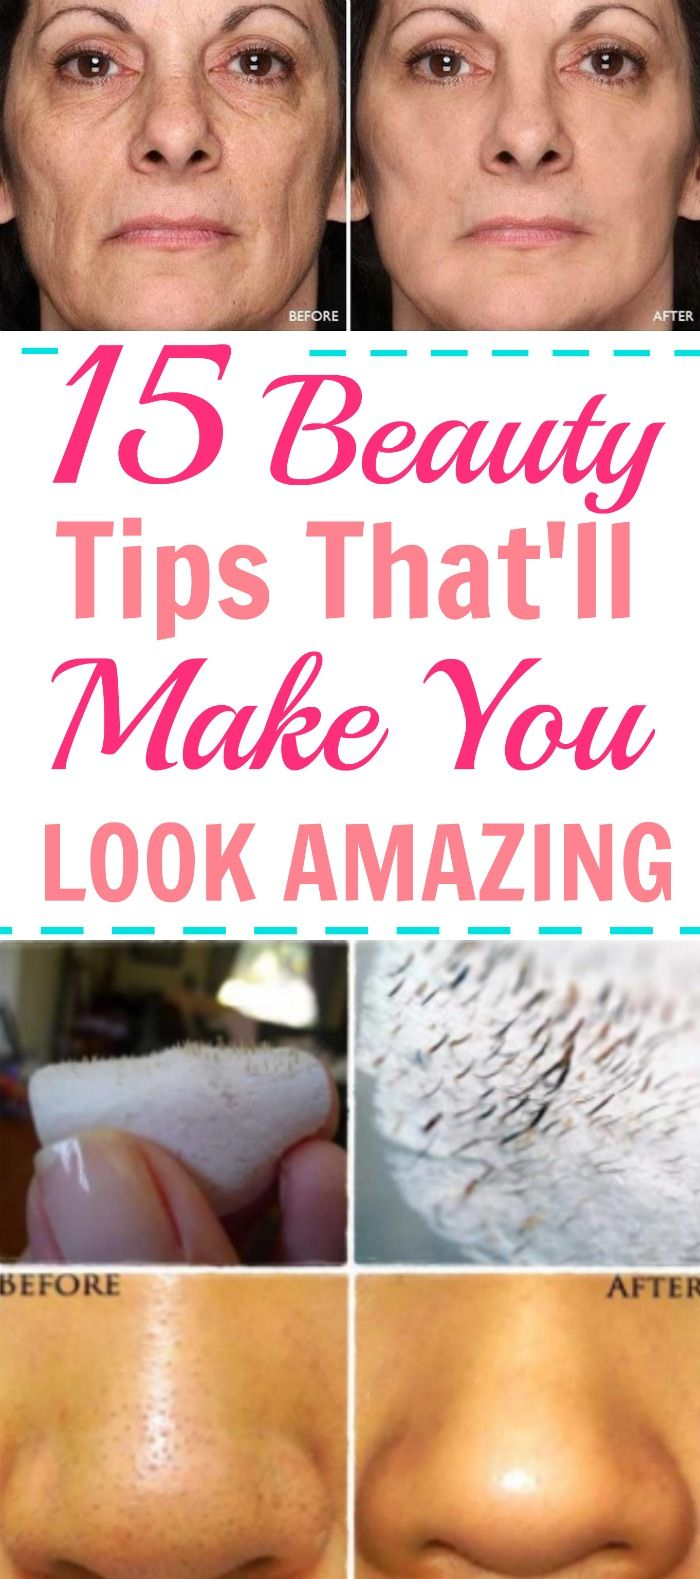 15 Amazing Beauty Hacks For Your Major Problem Areas. Fantastic list of beauty hacks! I love how most of them are DIY and home remedies. I'm glad I found this!